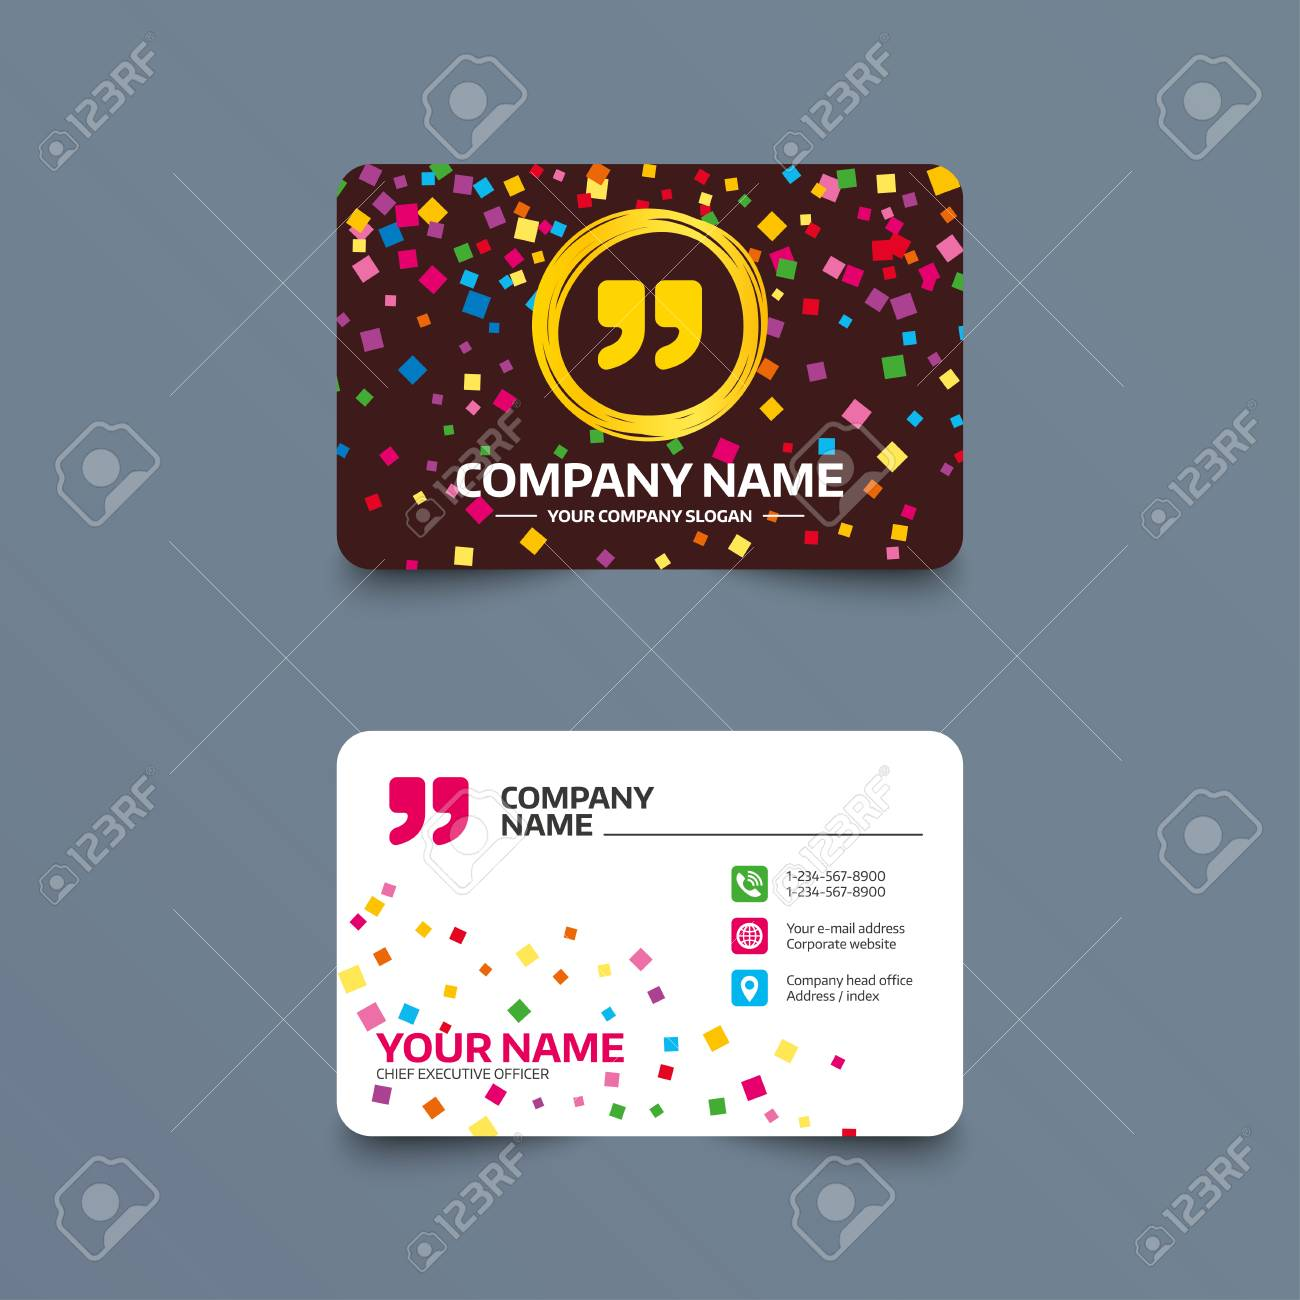 Business card template with confetti pieces quote sign icon business card template with confetti pieces quote sign icon quotation mark symbol double reheart Images